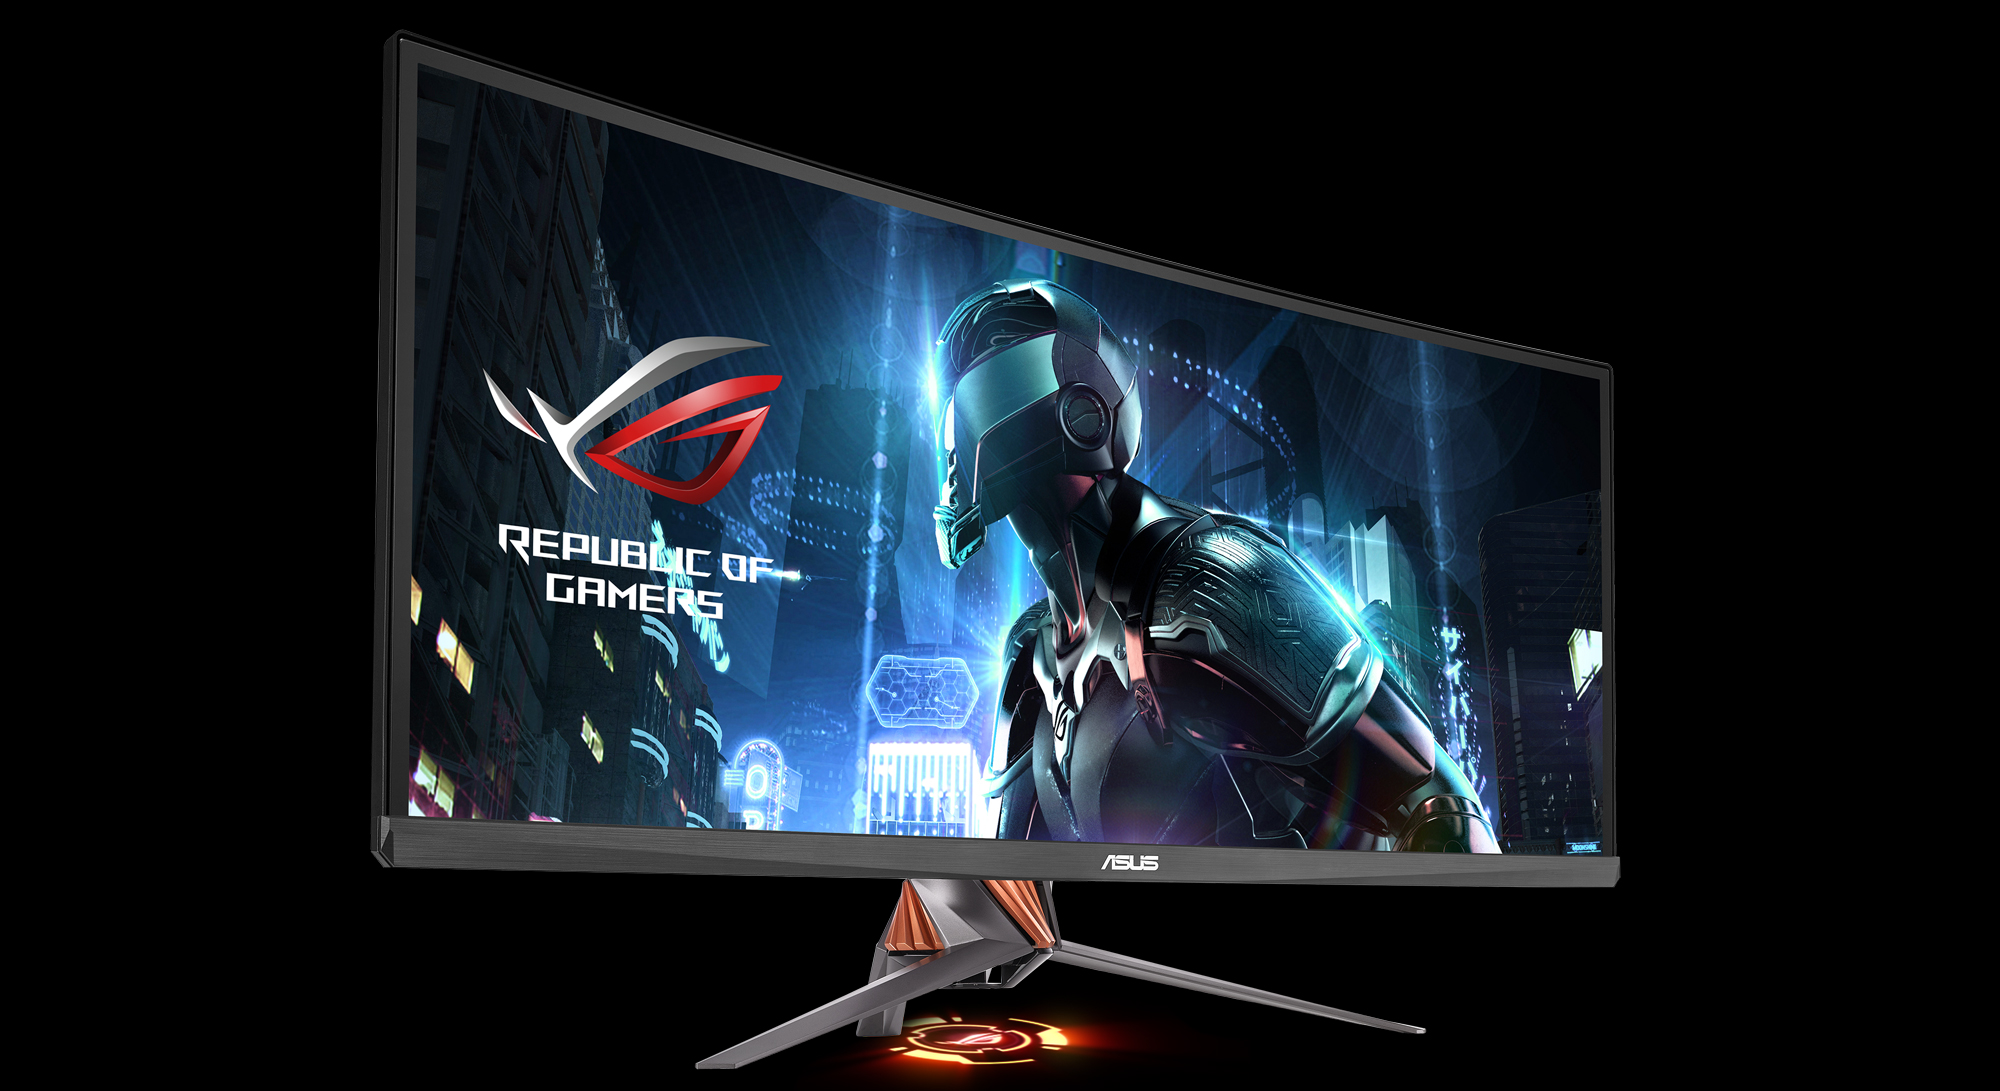 ASUS ROG Swift PG348Q Curved 3440x1440 G-Sync monitor